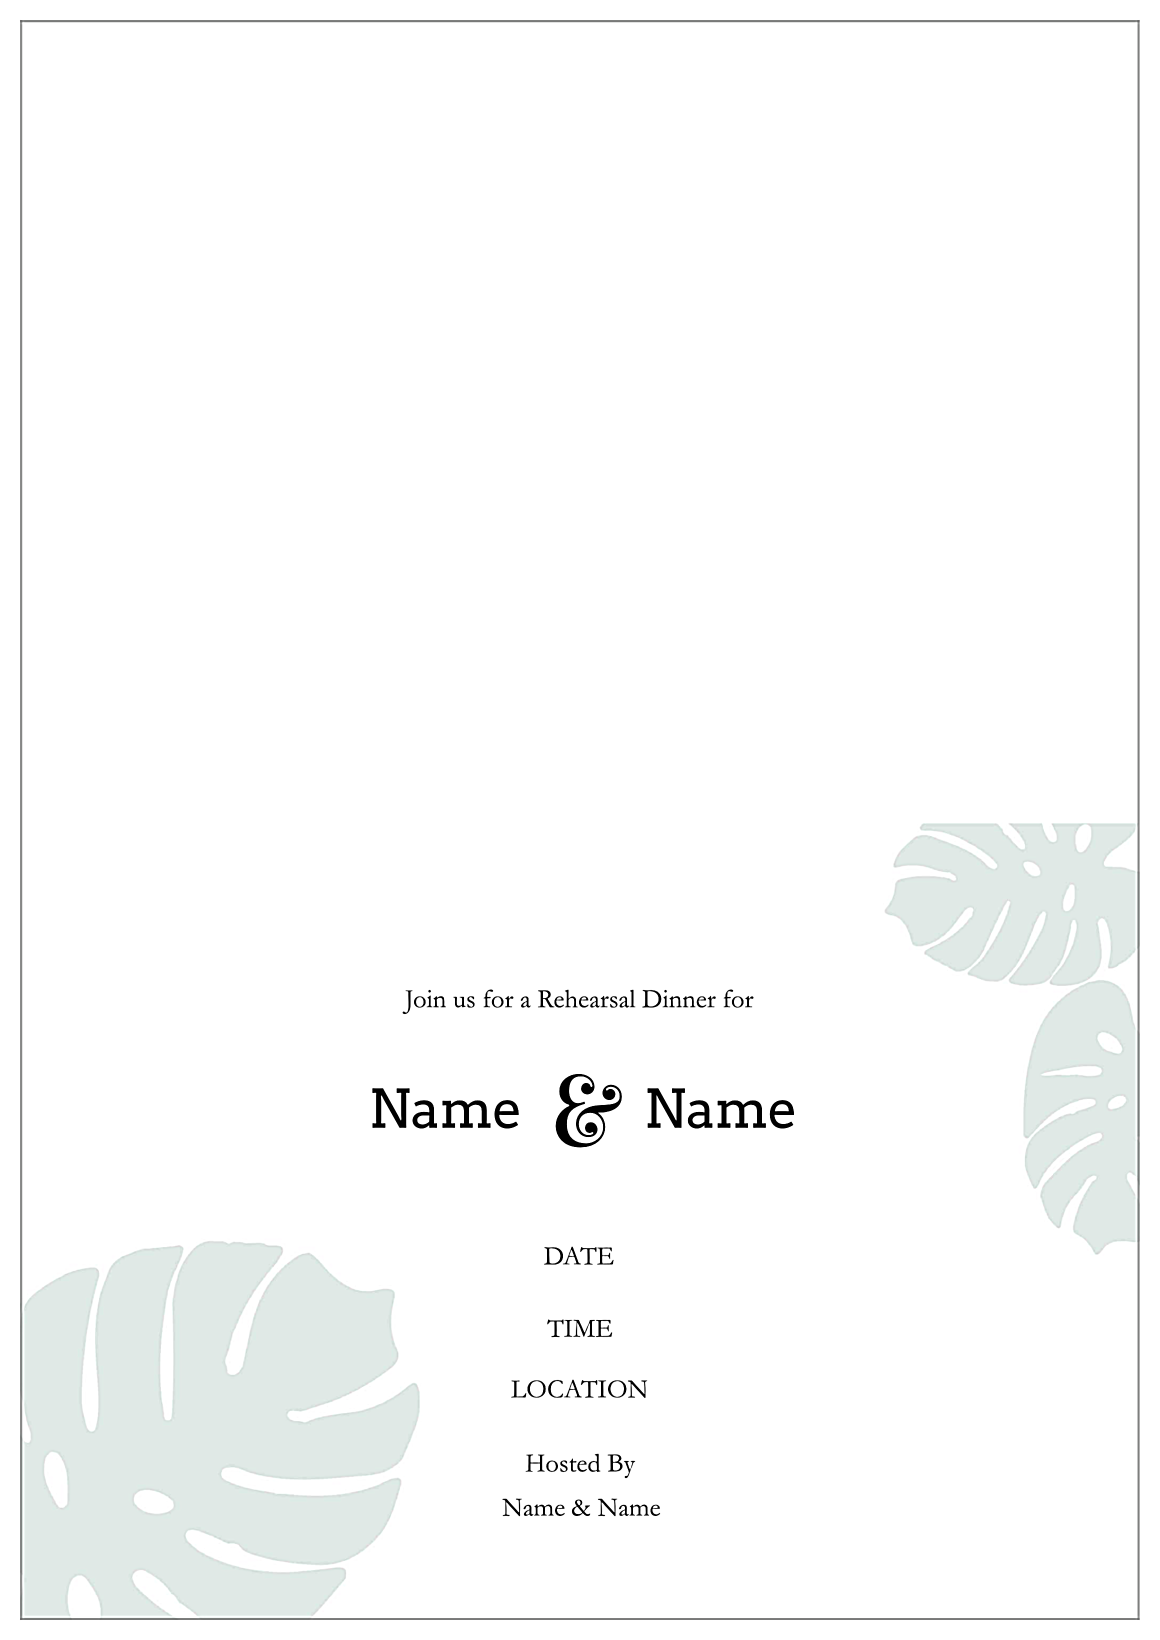 Rehearse Your Lines back - Greeting Cards Maker